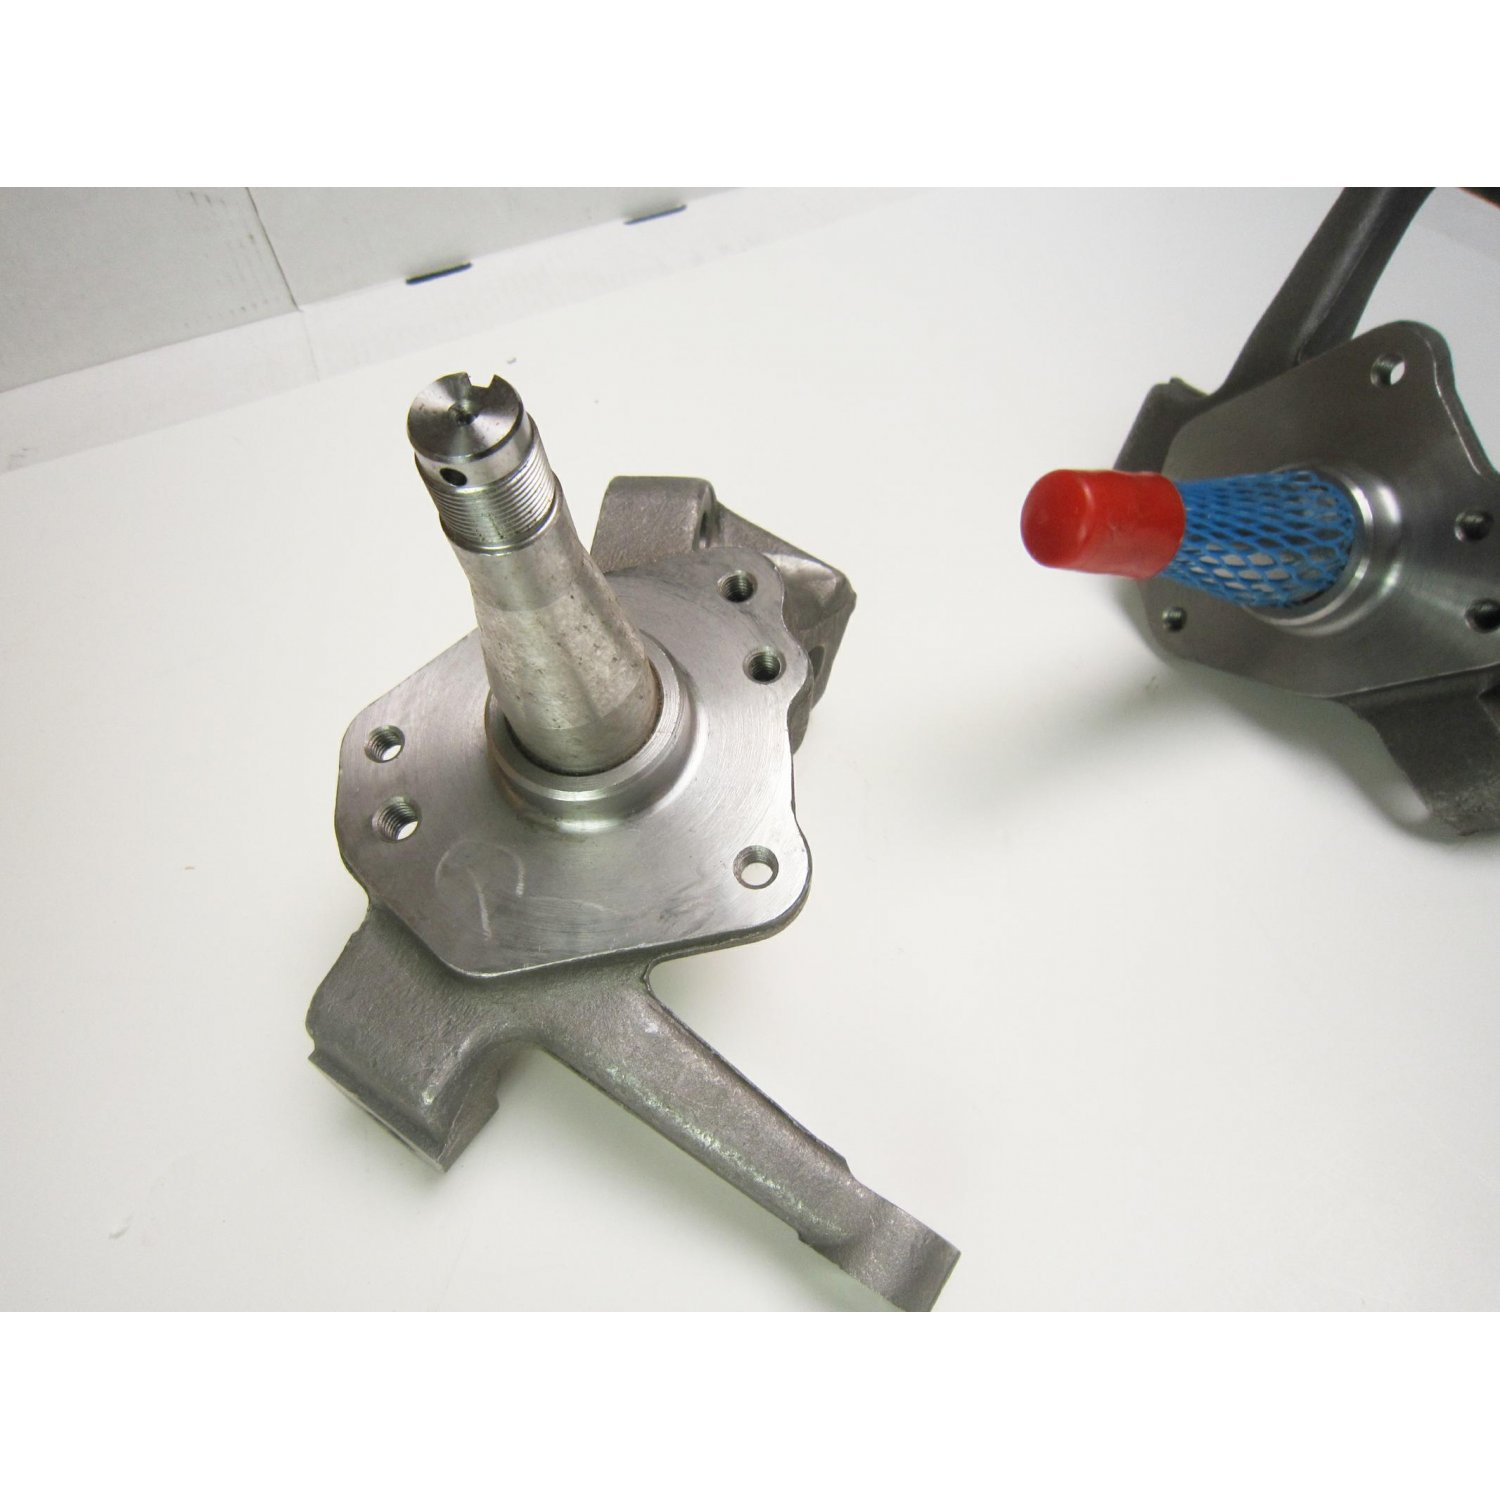 Street Rod Front Axle : Mustang ii in ifs kit drop spindle street rod front end